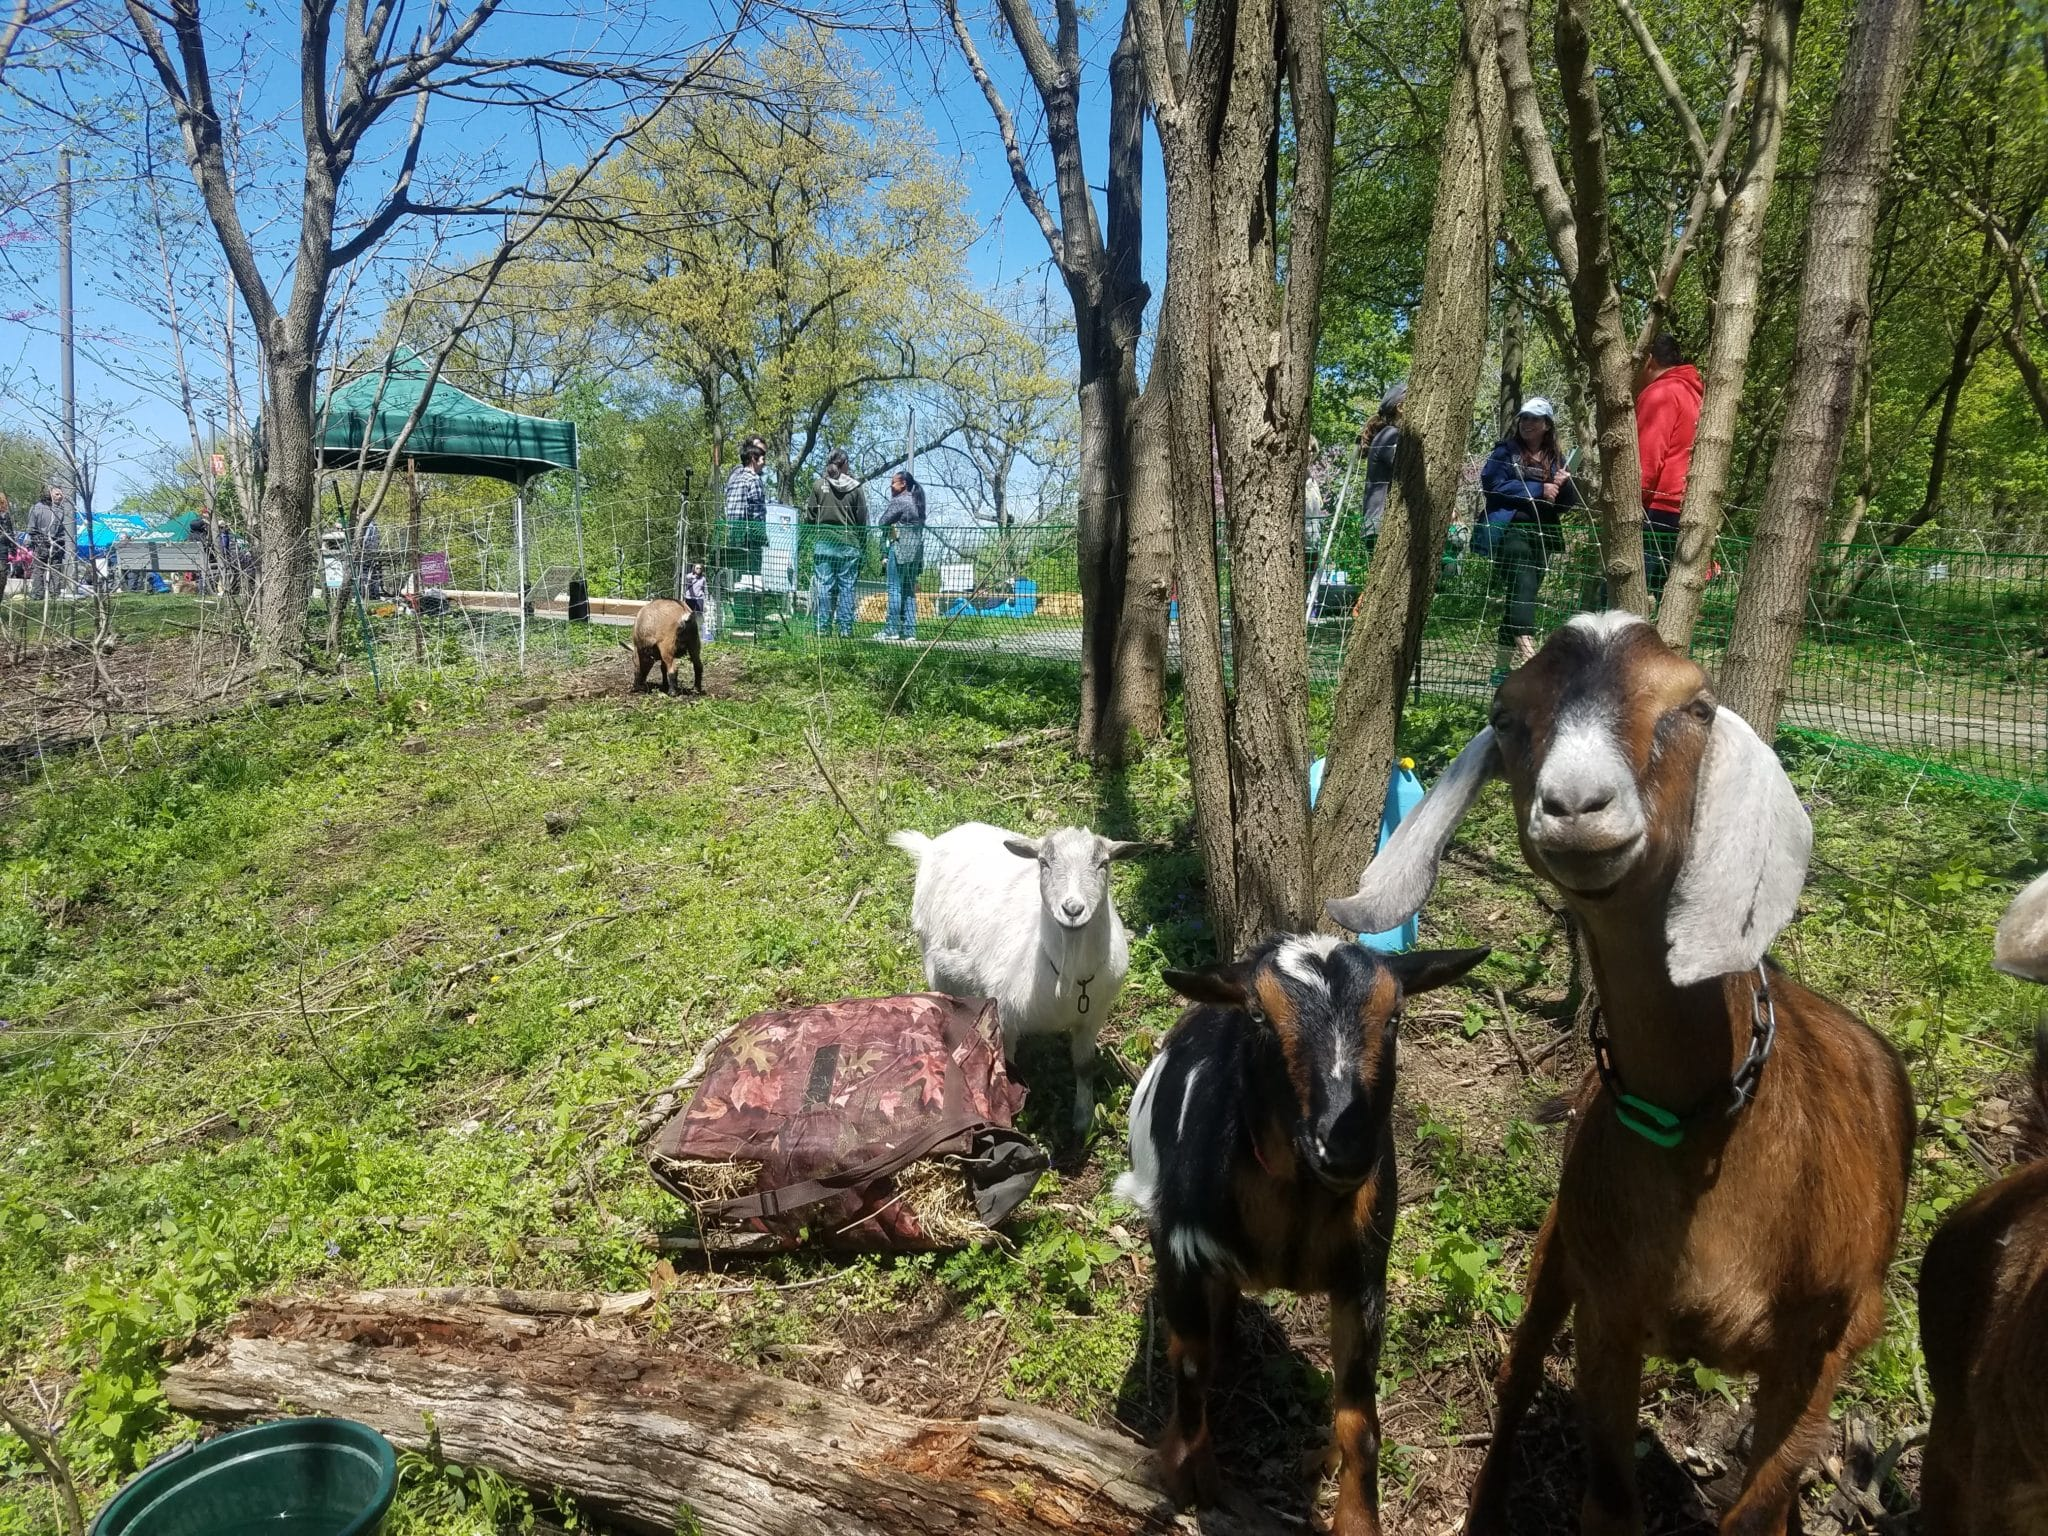 Goats in a wooded area